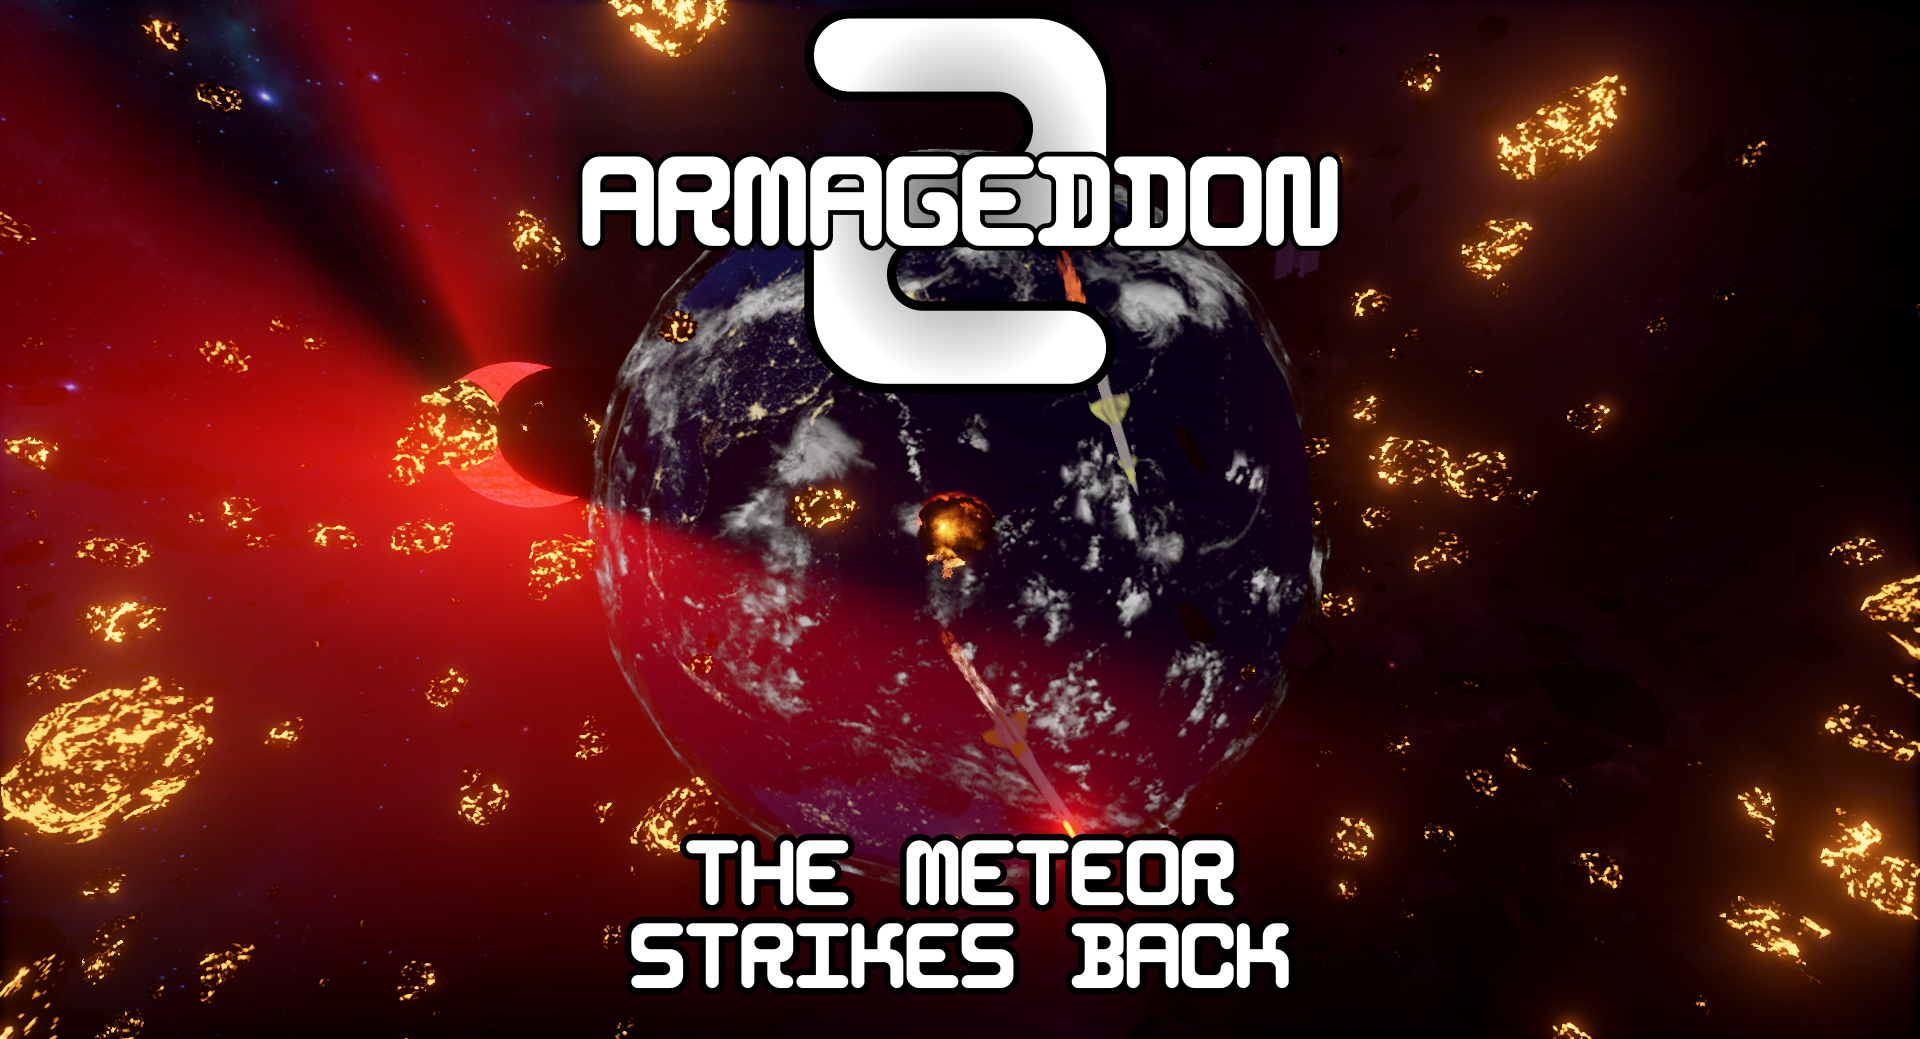 Armageddon 2: The Meteor Strikes Back